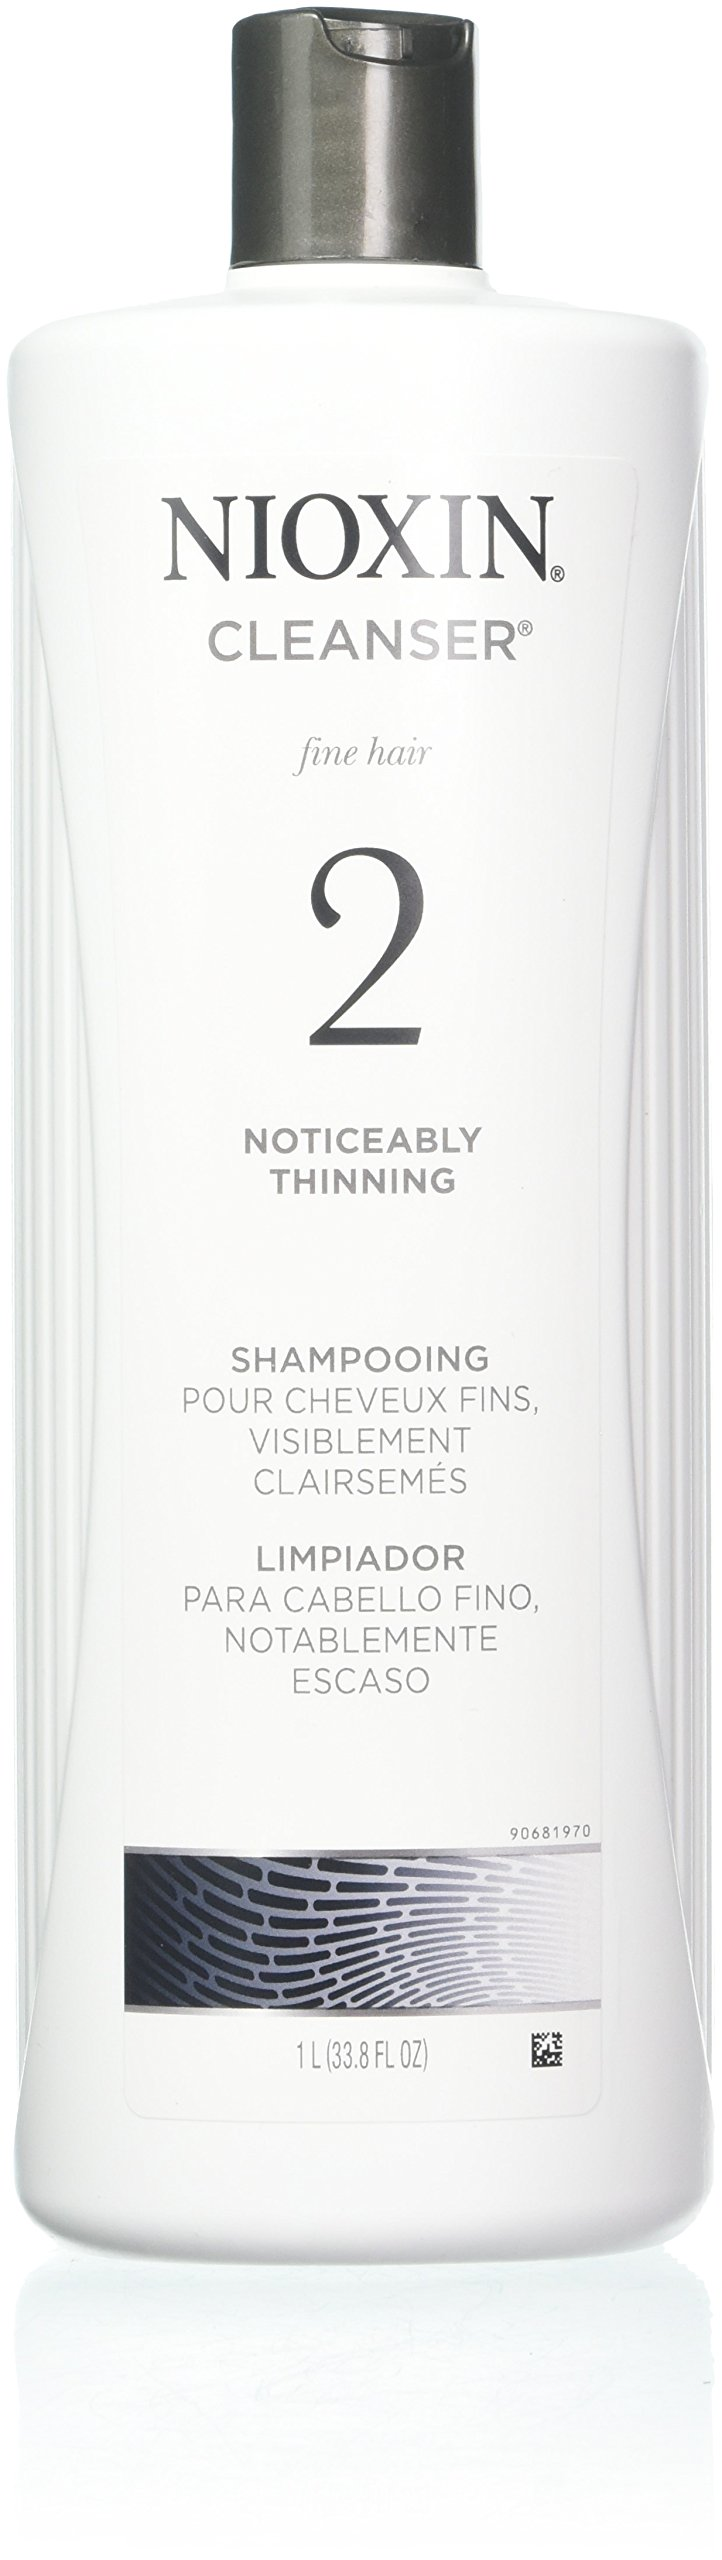 Nioxin Cleanser, System 2 (Fine/Noticeably Thinning )shampooing, 33.8 Ounce by Nioxin